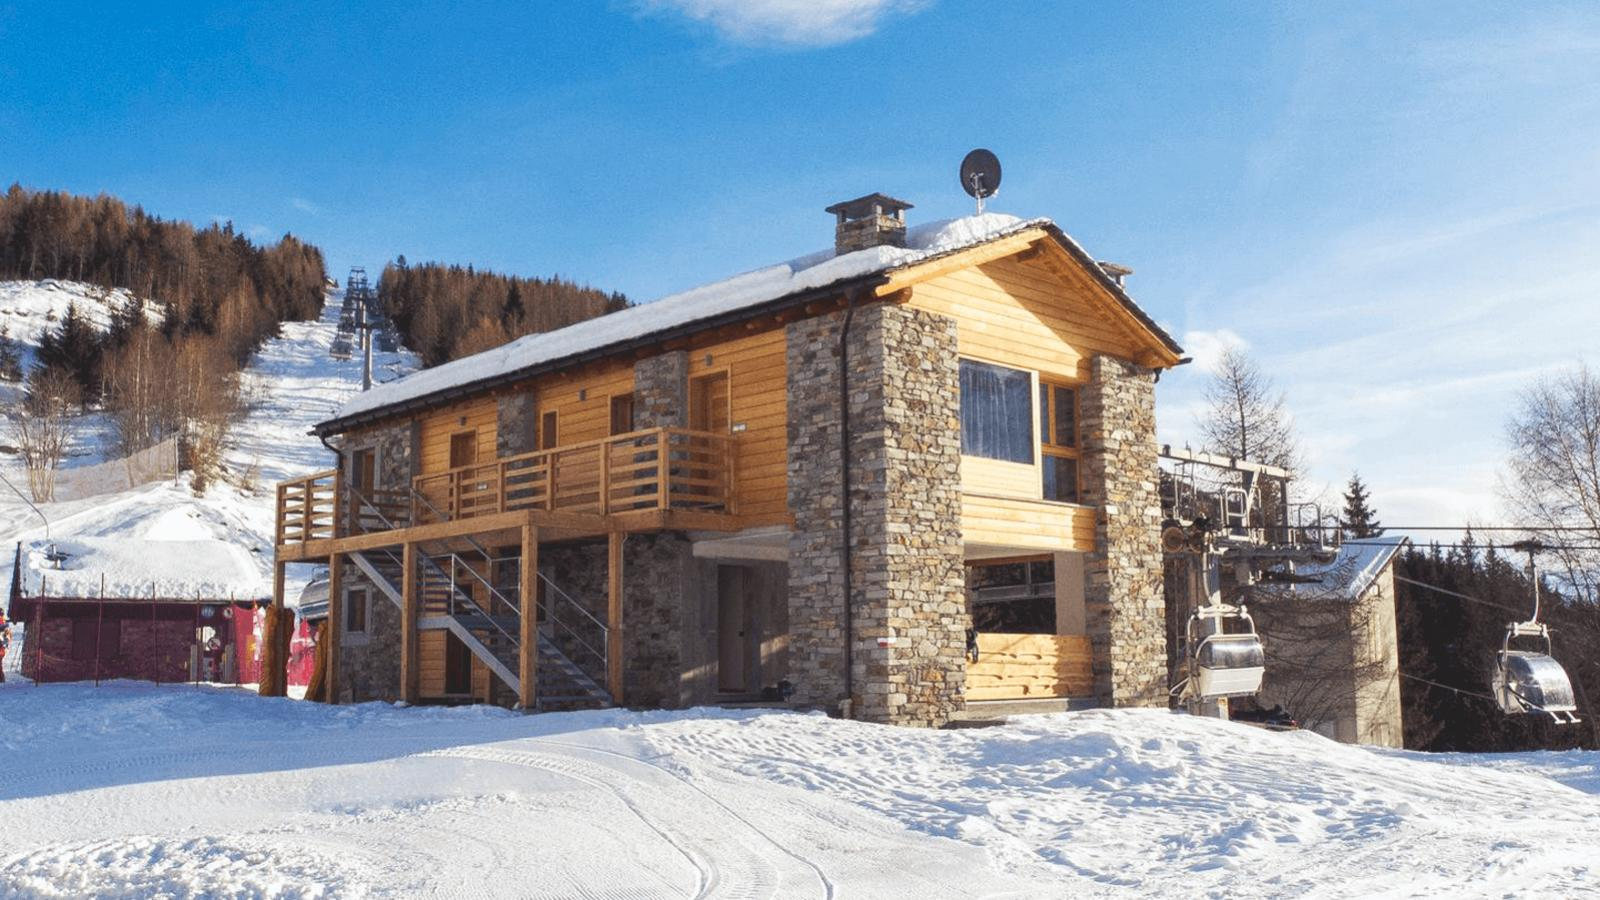 Accommodation at Barchi: a cosy nest in the midst of nature